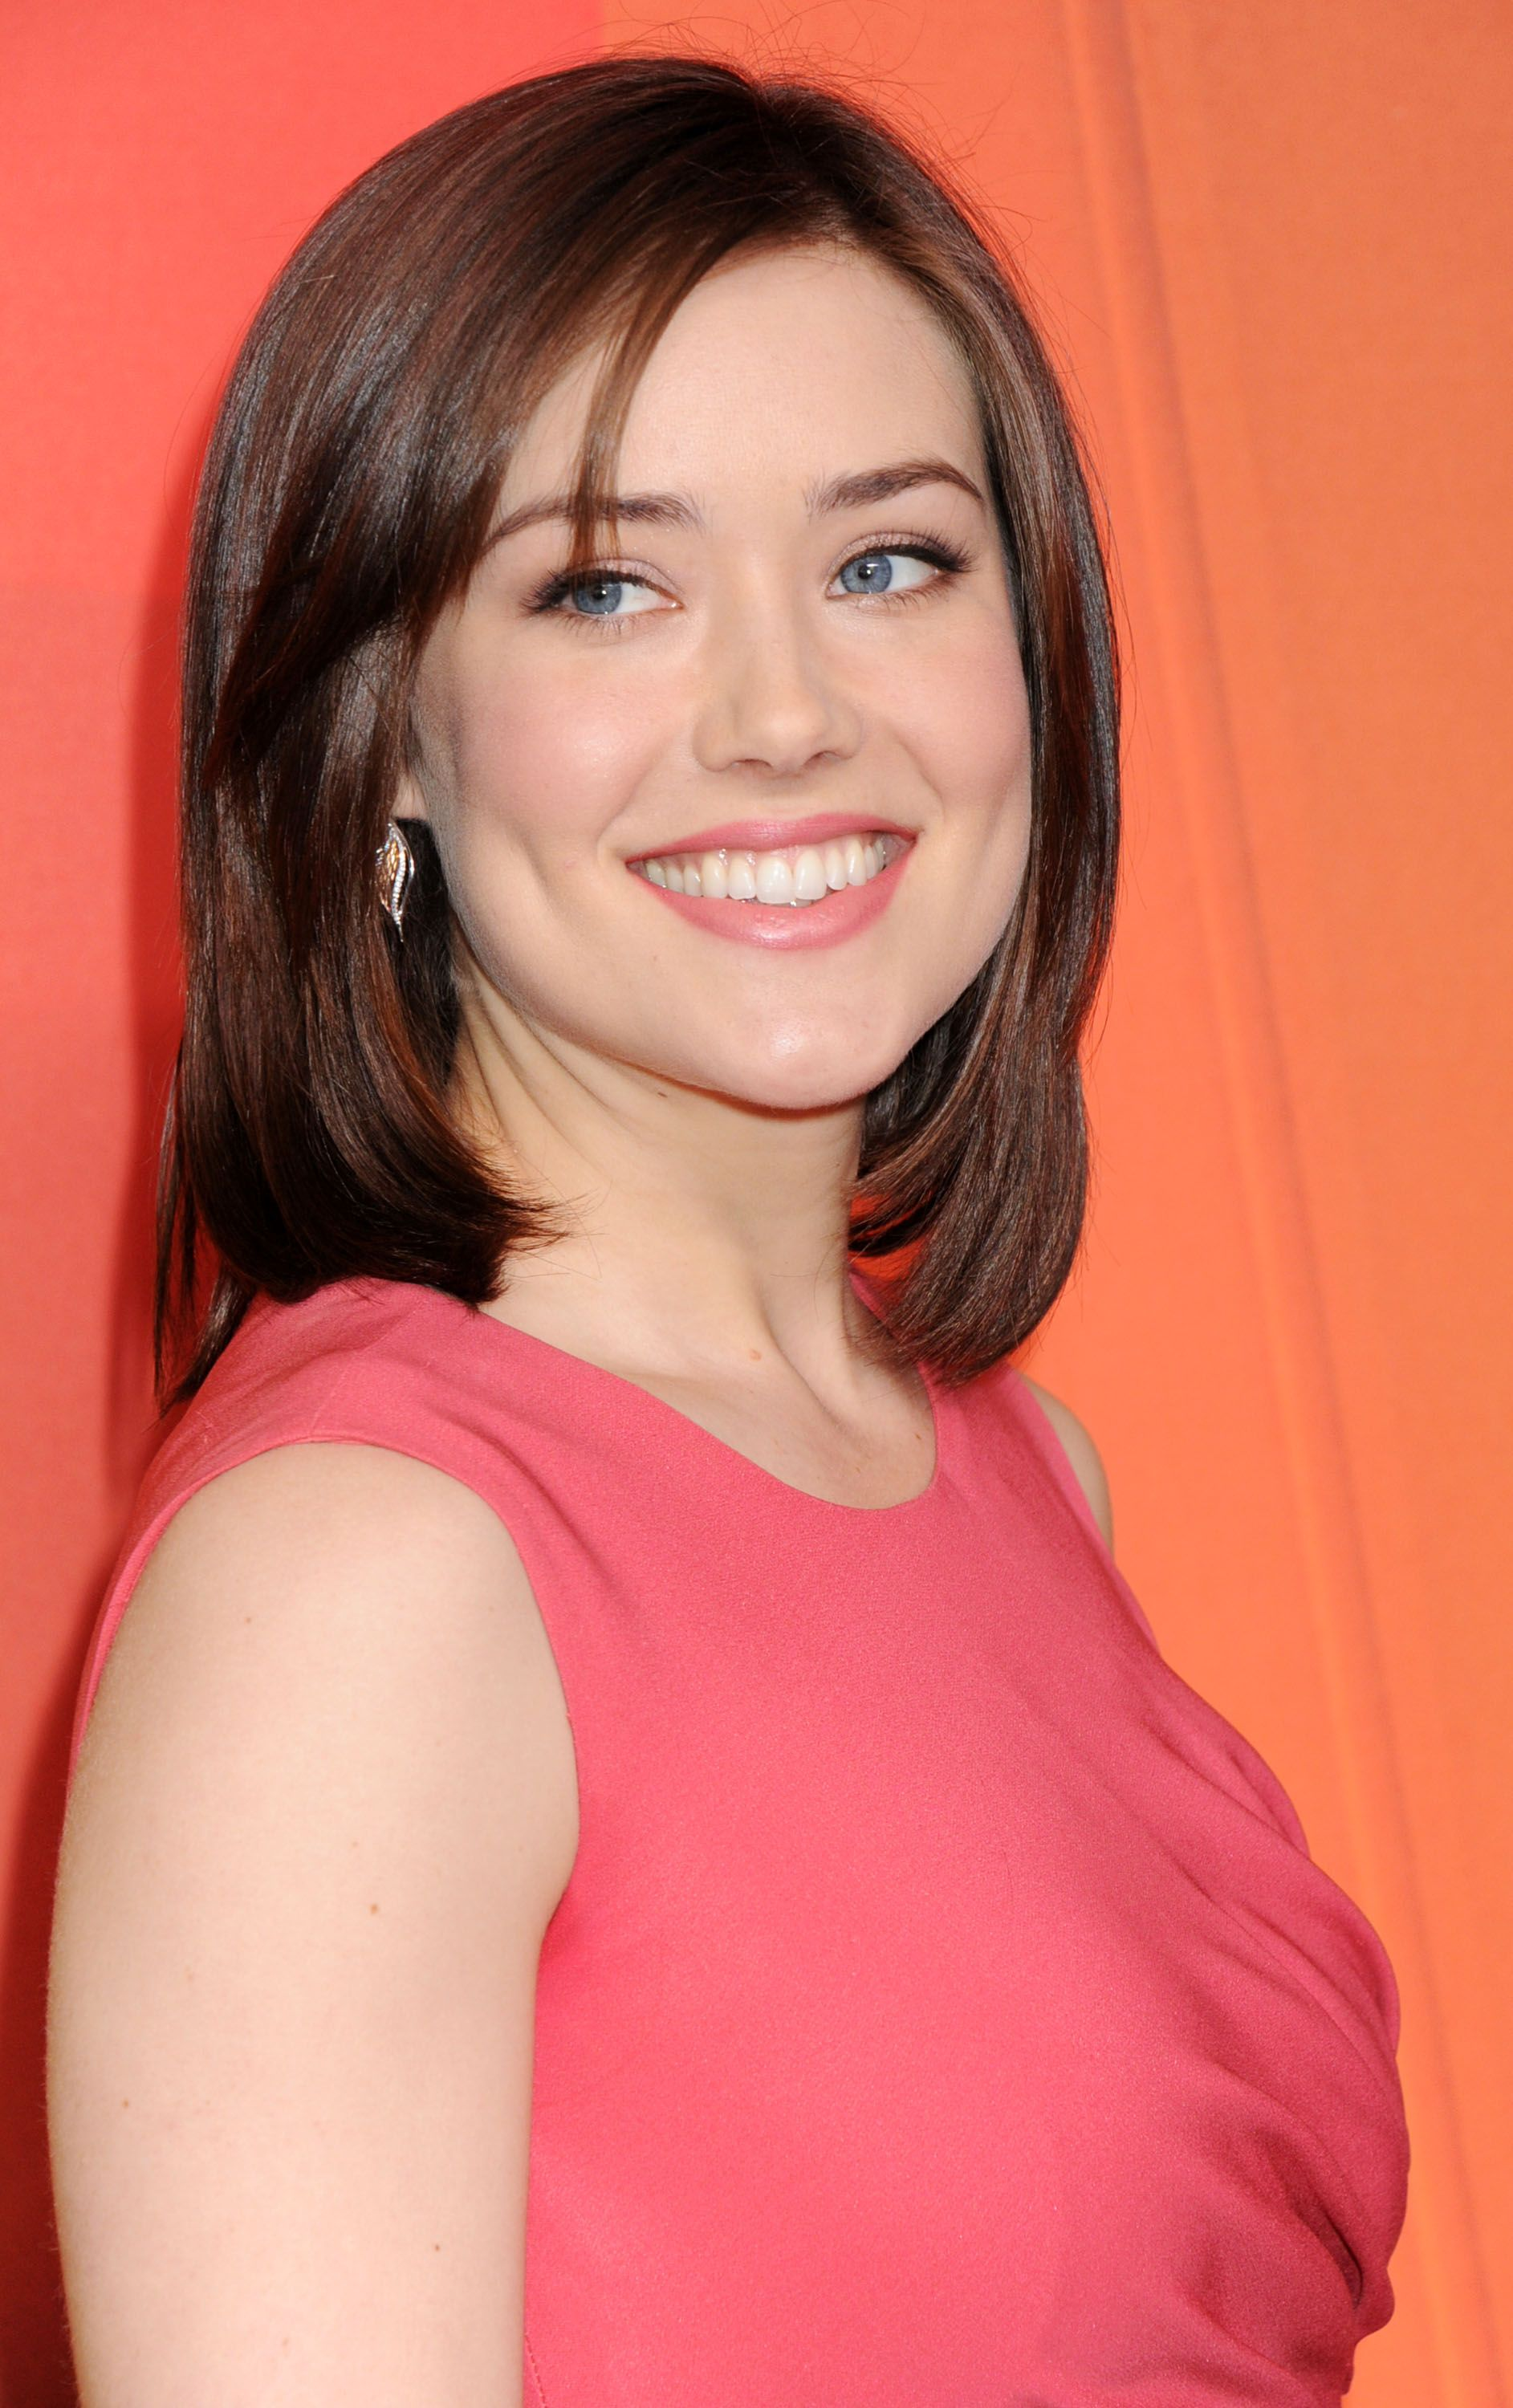 Megan Boone Wig : megan, boone, Length,, Going, Next., She's, Wearing, Anymore,, Truthf…, Inspiration,, Megan, Boone,, Beauty, Makeup